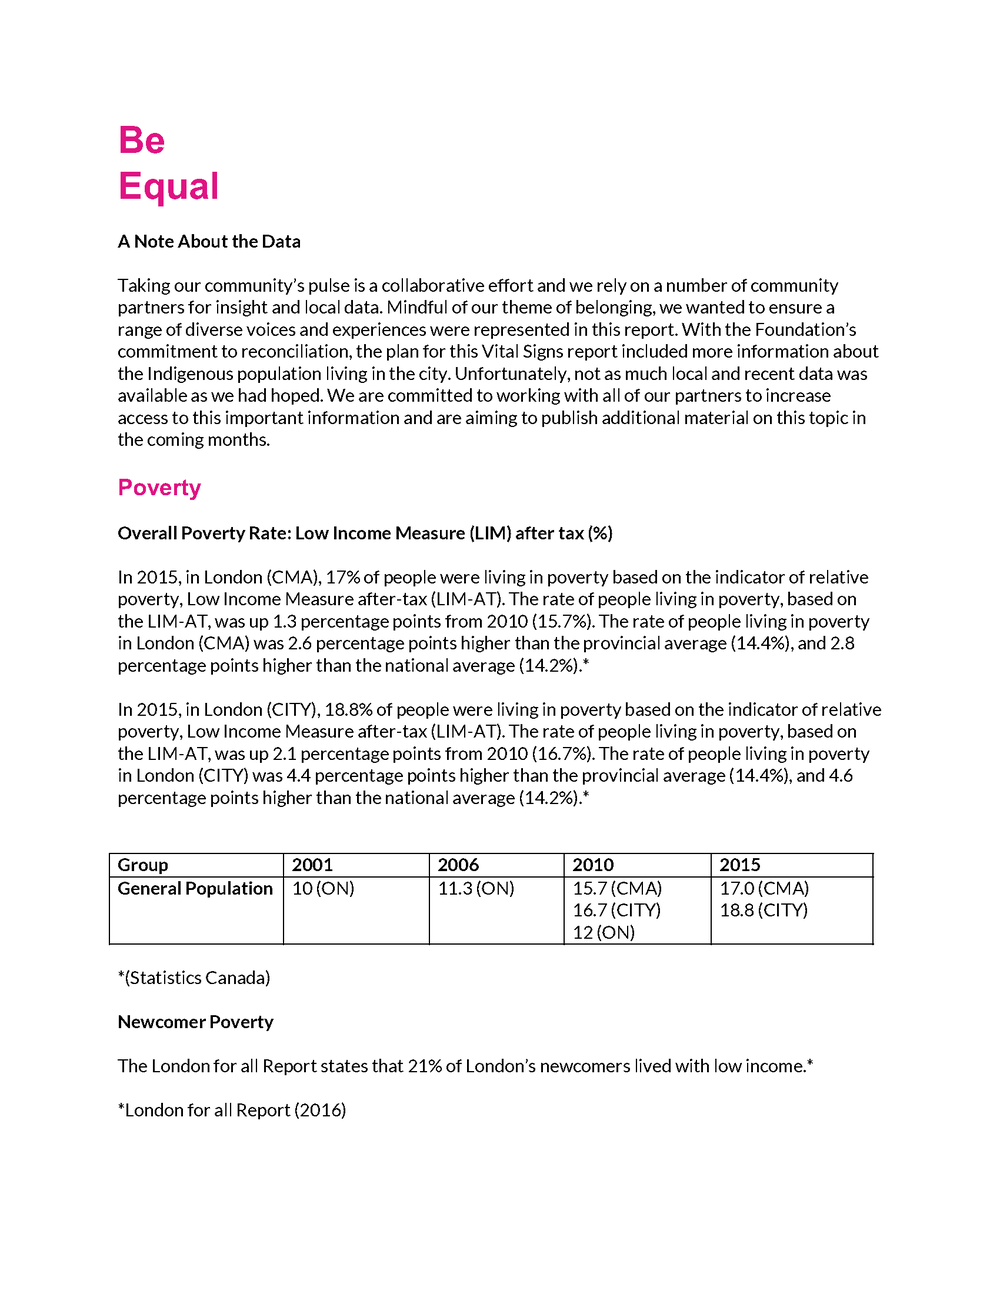 LCF-Vital Signs-Be Equal_2.png